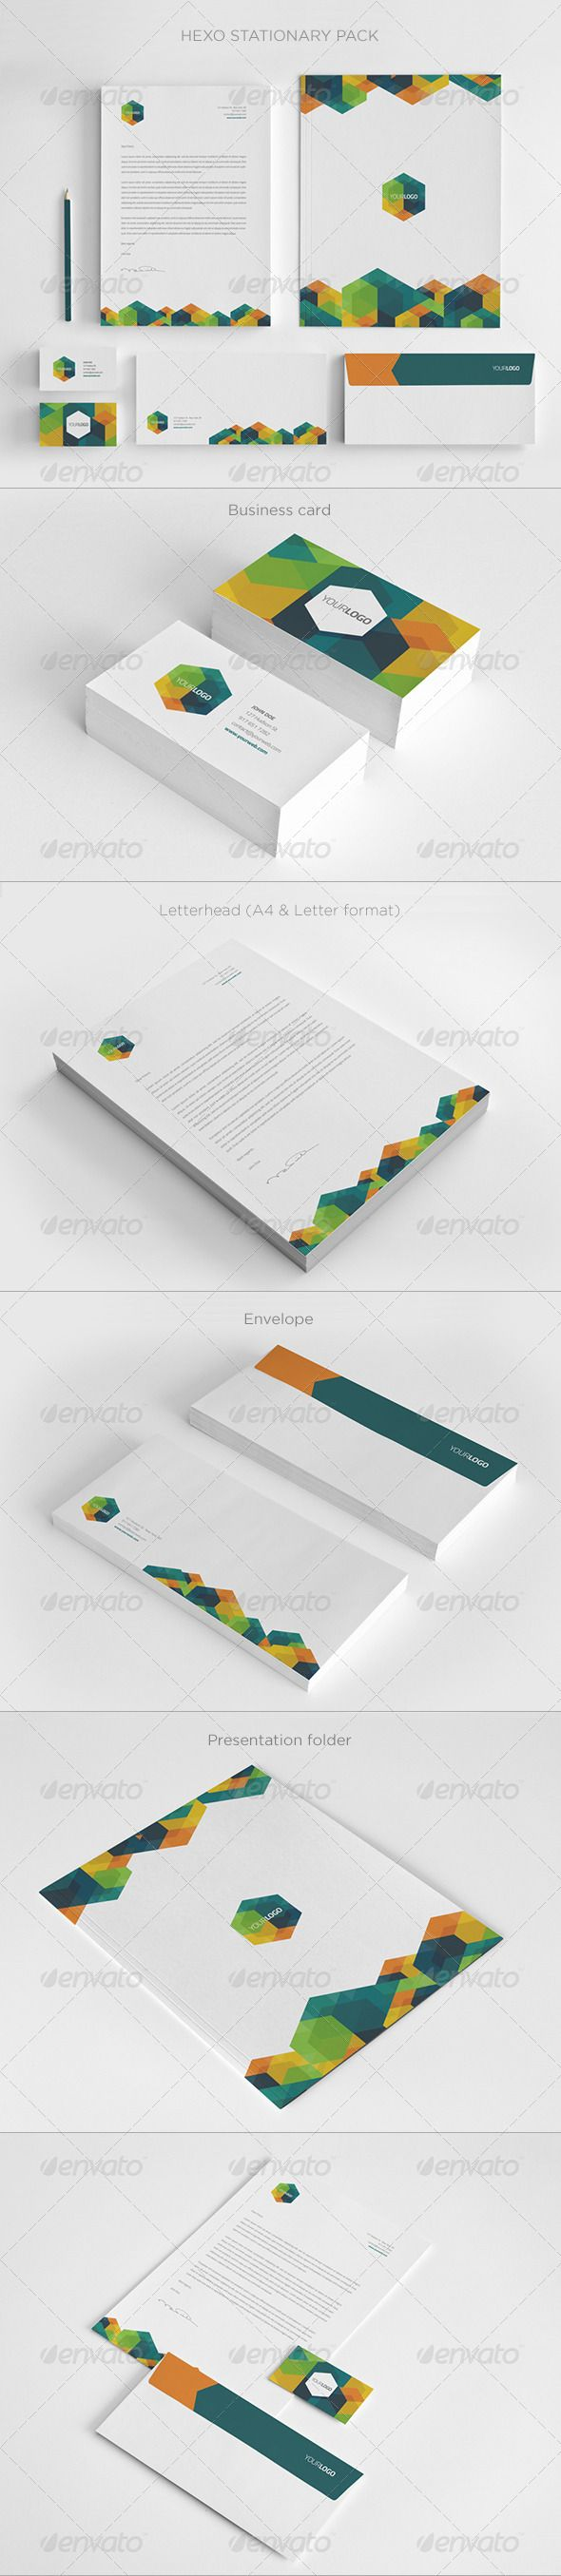 Modern Hexo Stationary Pack #GraphicRiver Hexo Stationary Pack Pack includes: · Letterhead A4 and Letter size · Business Card (3,5×2) · Envelope (8.27×3.9) · Presentation Folder (9×12) · Editable Illustrator files (.AI and .EPS) · Textures · 300 dpi, CMYK (print ready) · 3mm bleed and crop marks · Easy to customize · Help file Fonts Titillium You can purchase the matching brochure here You can purchase the matching trifold here Create...